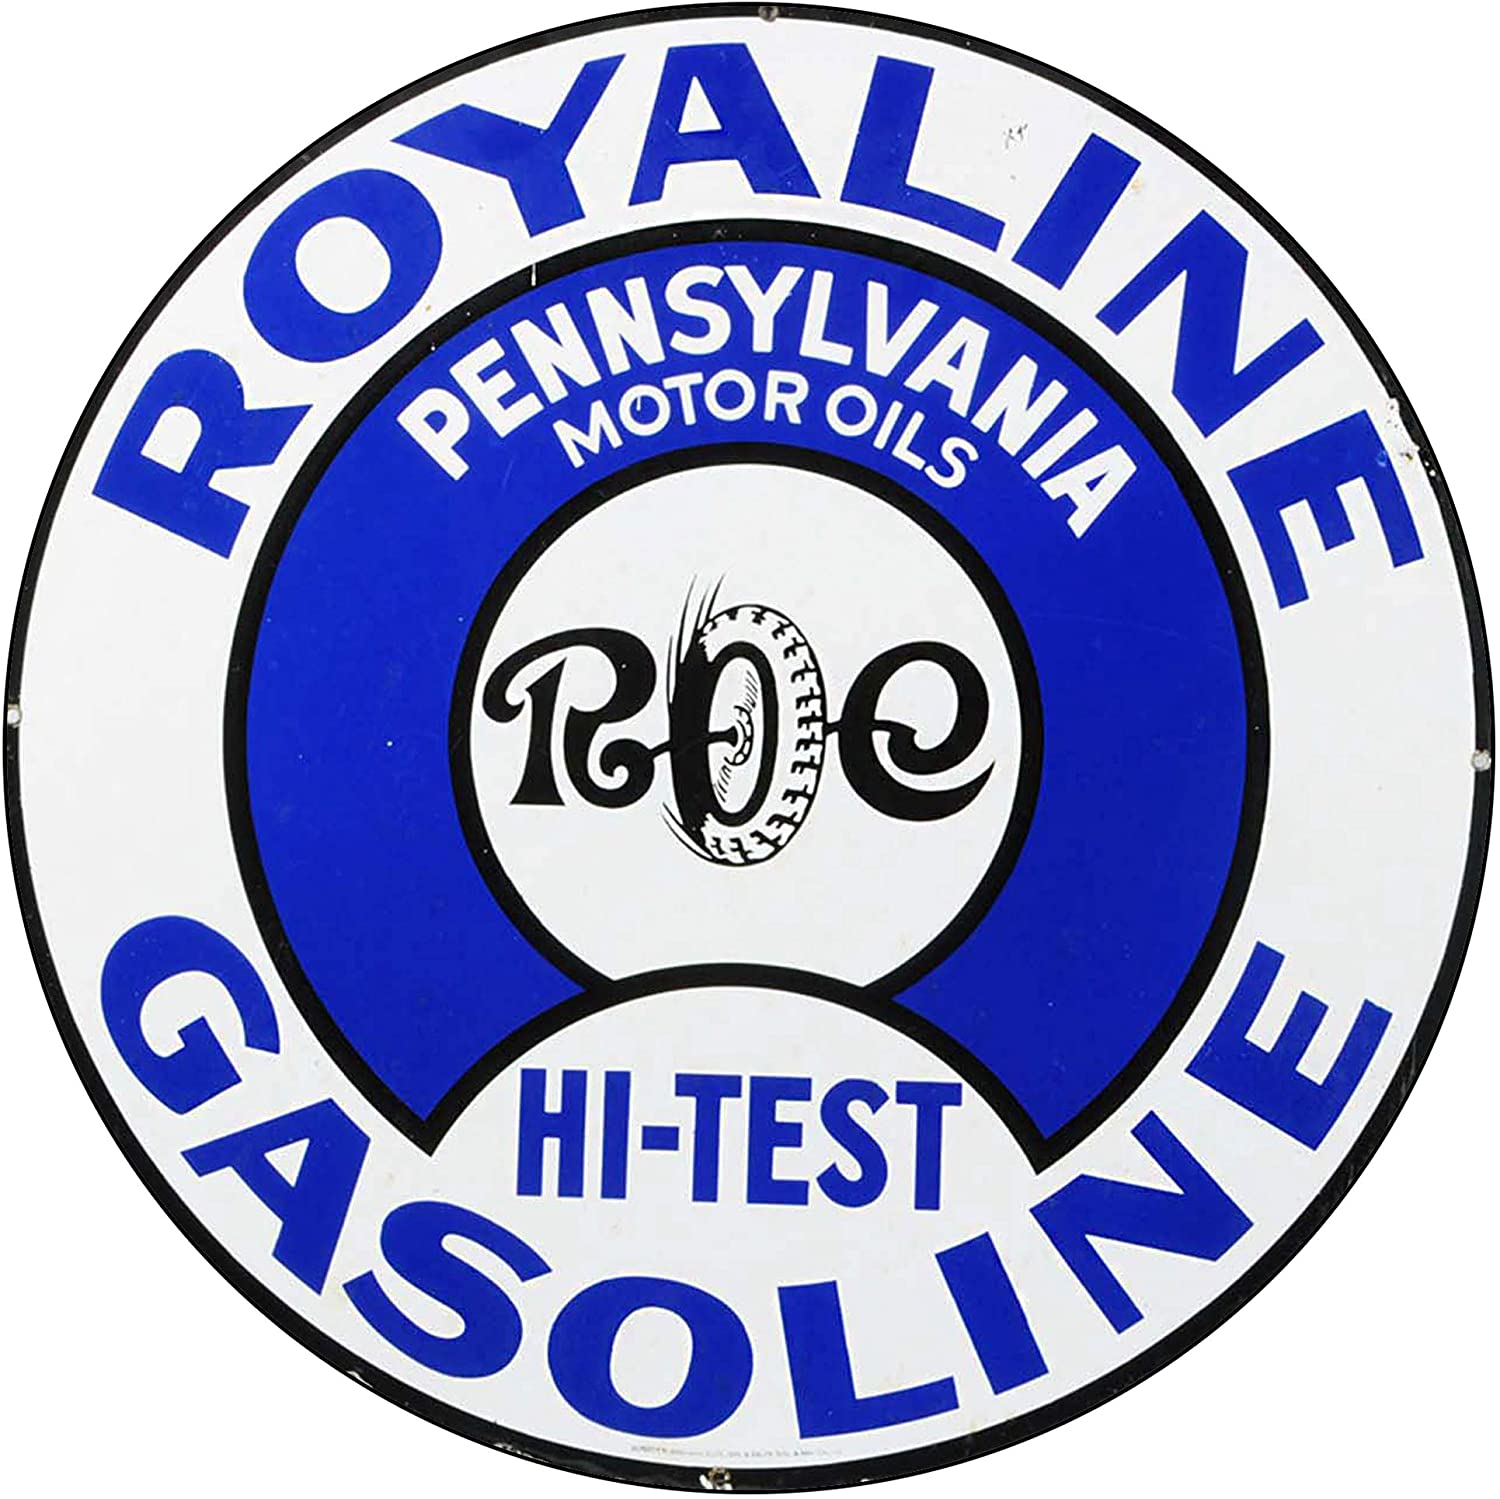 Brotherhood Vintage Gas Sign Reproduction Vintage Metal Signs Round Metal Tin Sign for Garage and Home 8 Inch Diameter – Royaline Gasoline